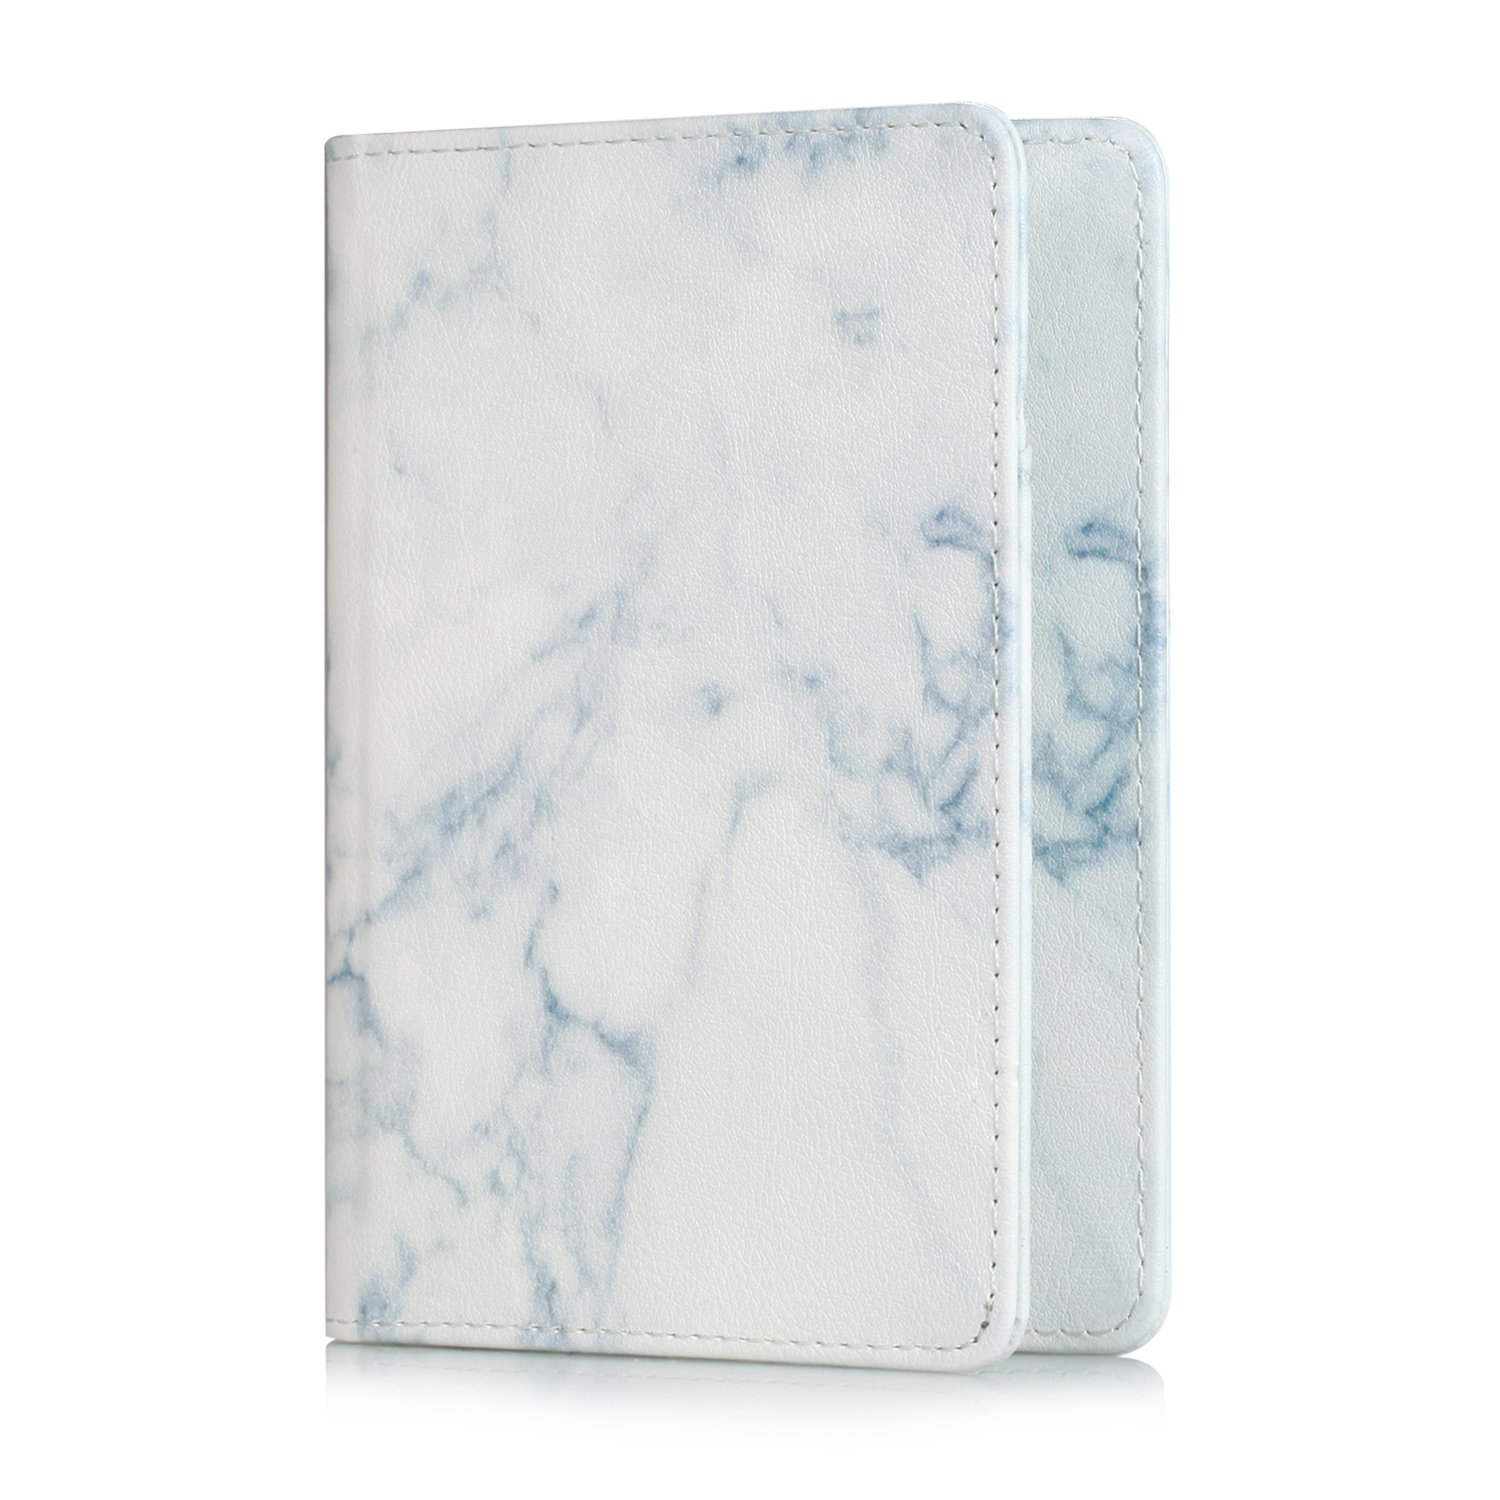 Hansin Passport Holder Travel Wallet, Premium Vegan Leather RFID Blocking Case Cover - Securely Holds Passport, Business Cards, Credit Cards, Boarding Passes, Marble